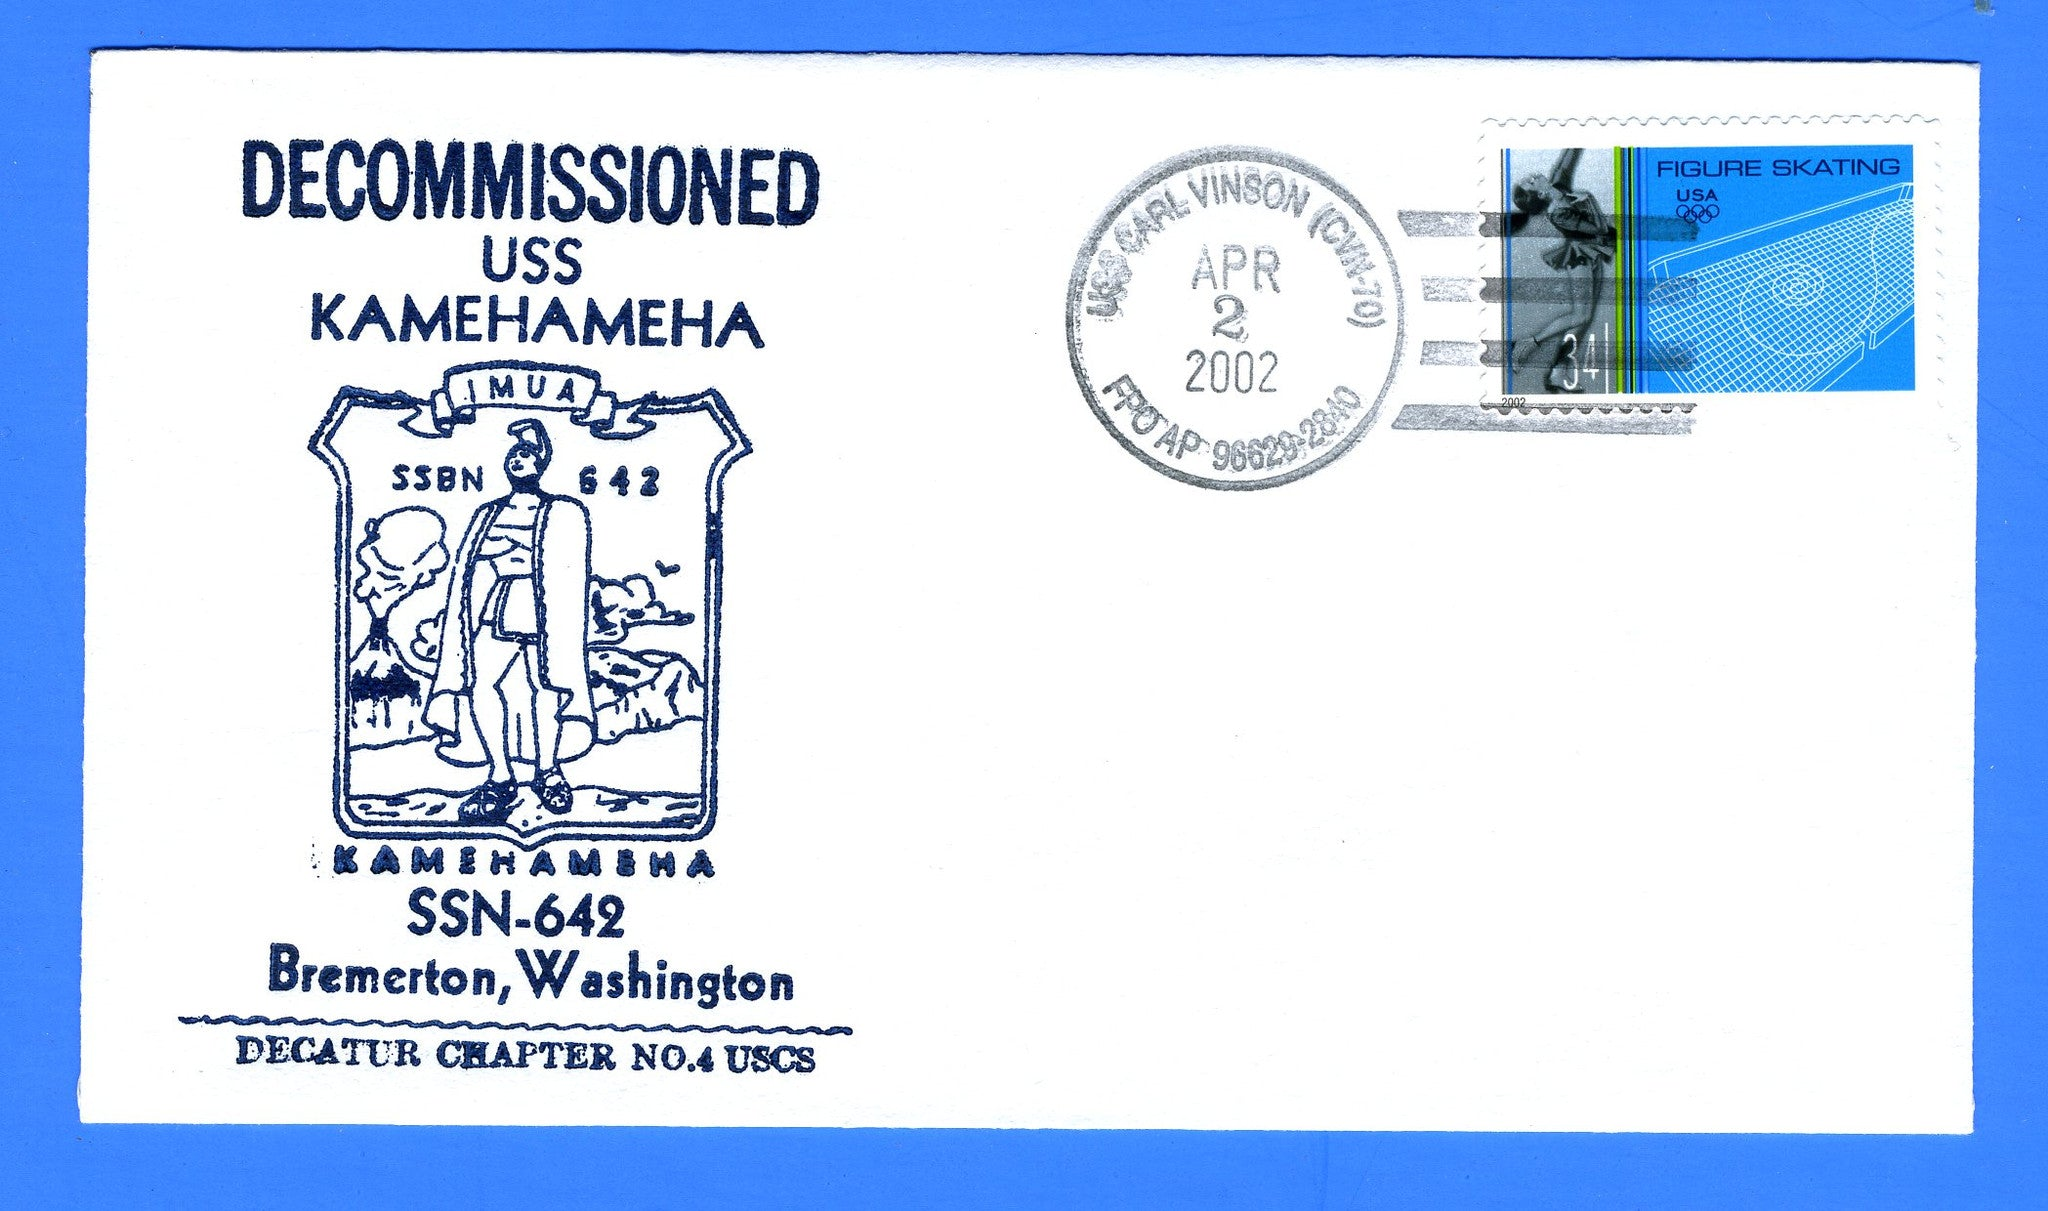 USS Kamehameha SSBN-642 Commissioned April 2, 2002 - Cachet by Stephen Decatur Chapter No. 4, USCS